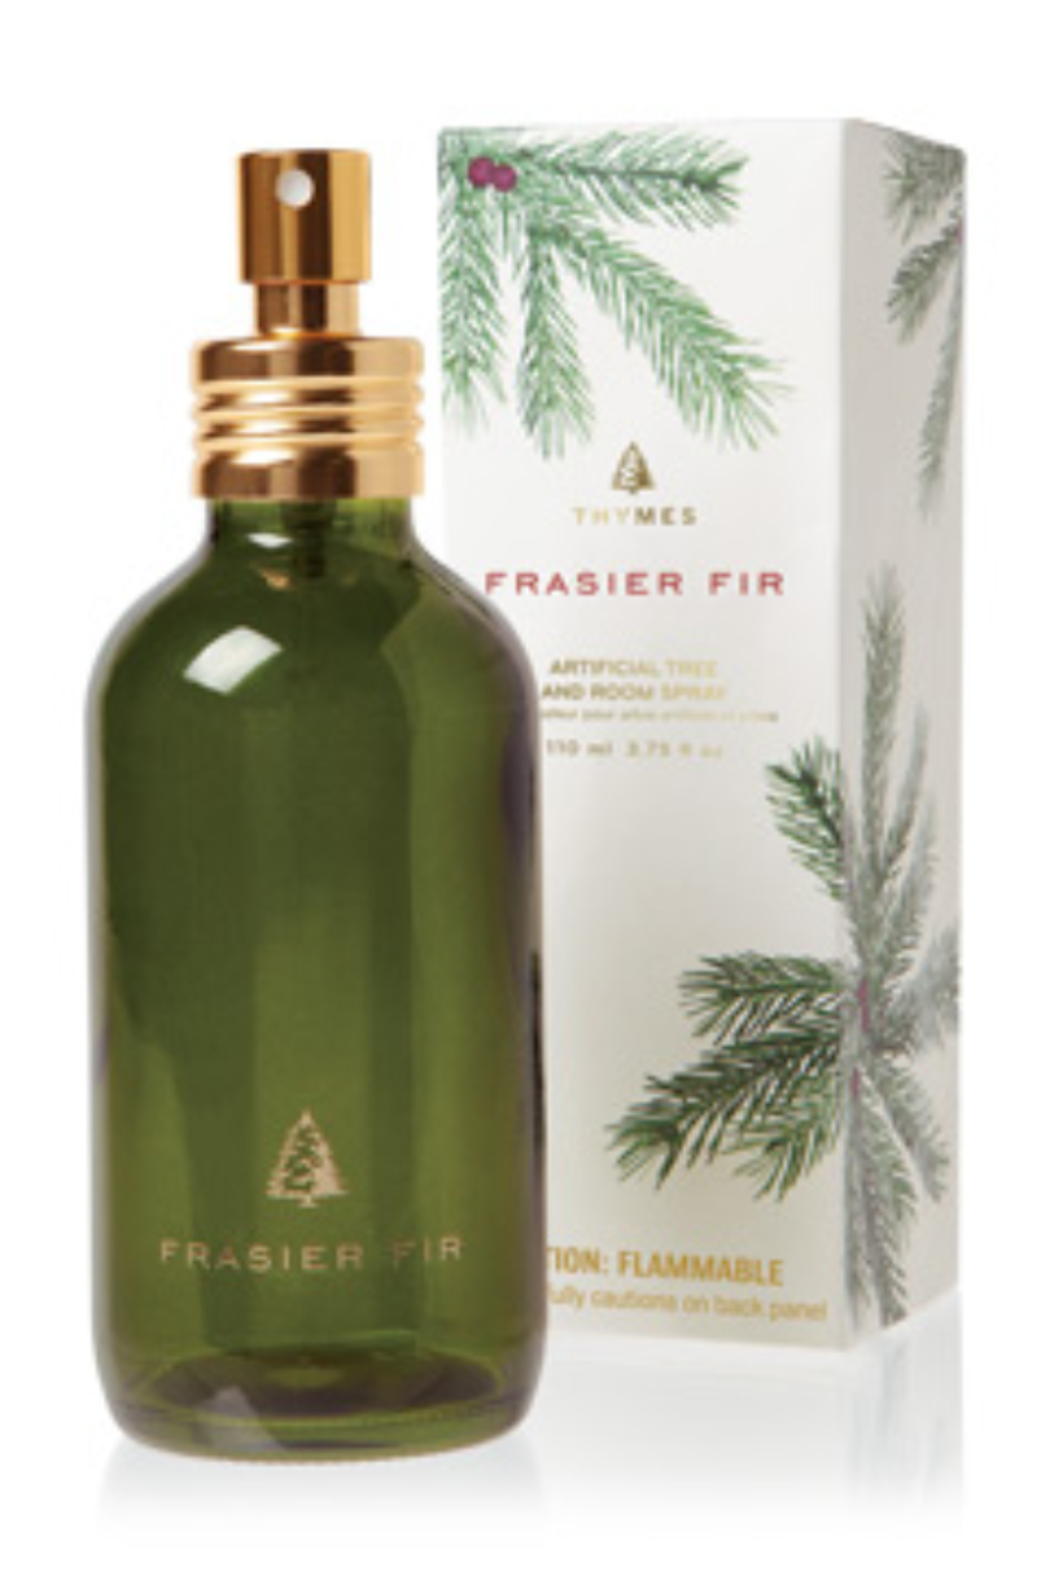 Thymes 3.75 OZ FRASIER FIR NOVELTY & ROOM SPRAY - Main Image